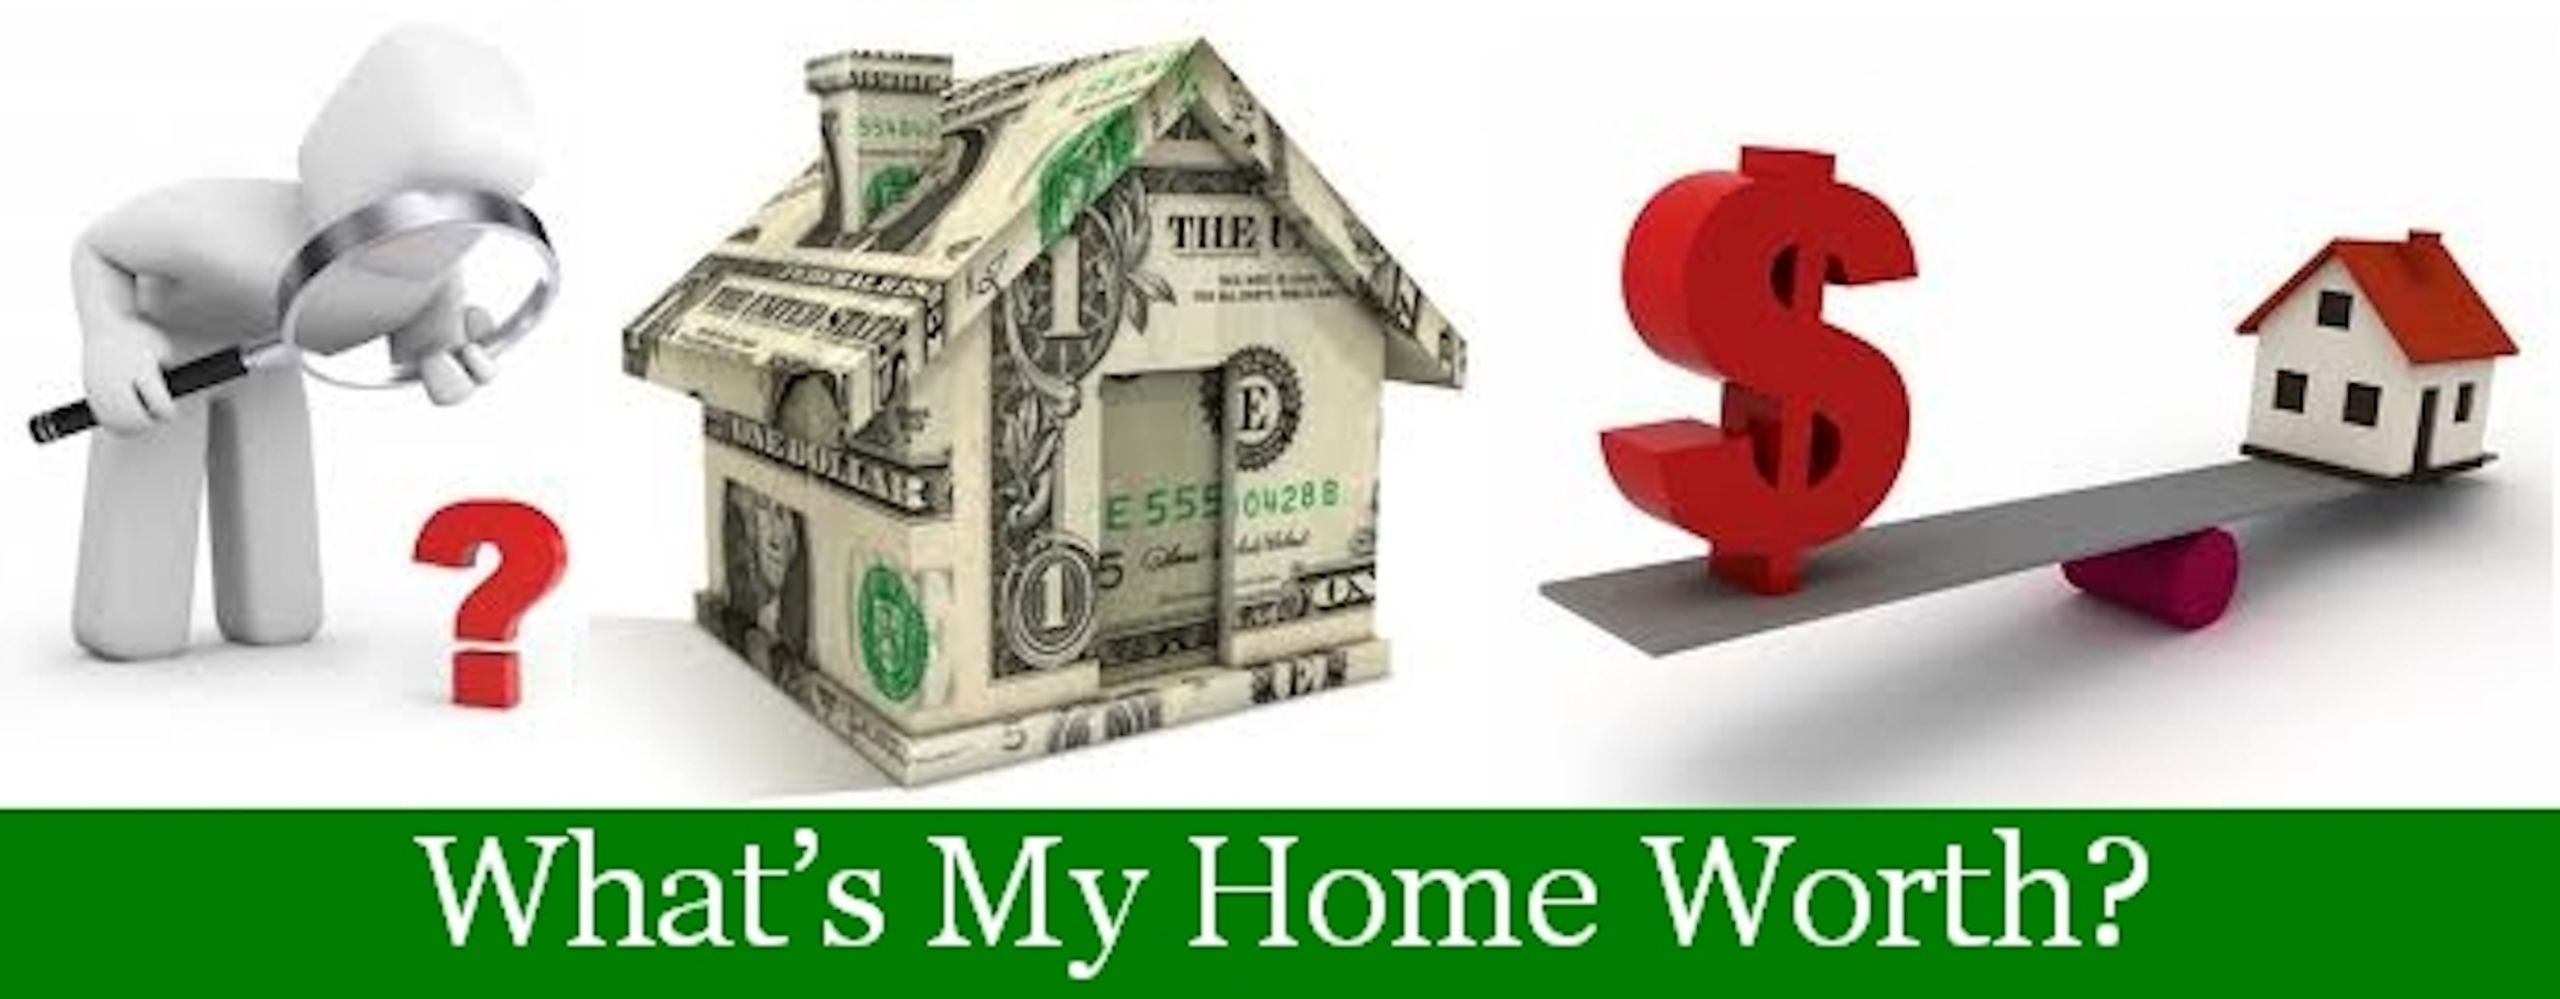 CLICK TO FIND OUT HOW MUCH YOUR HOME IS WORTH